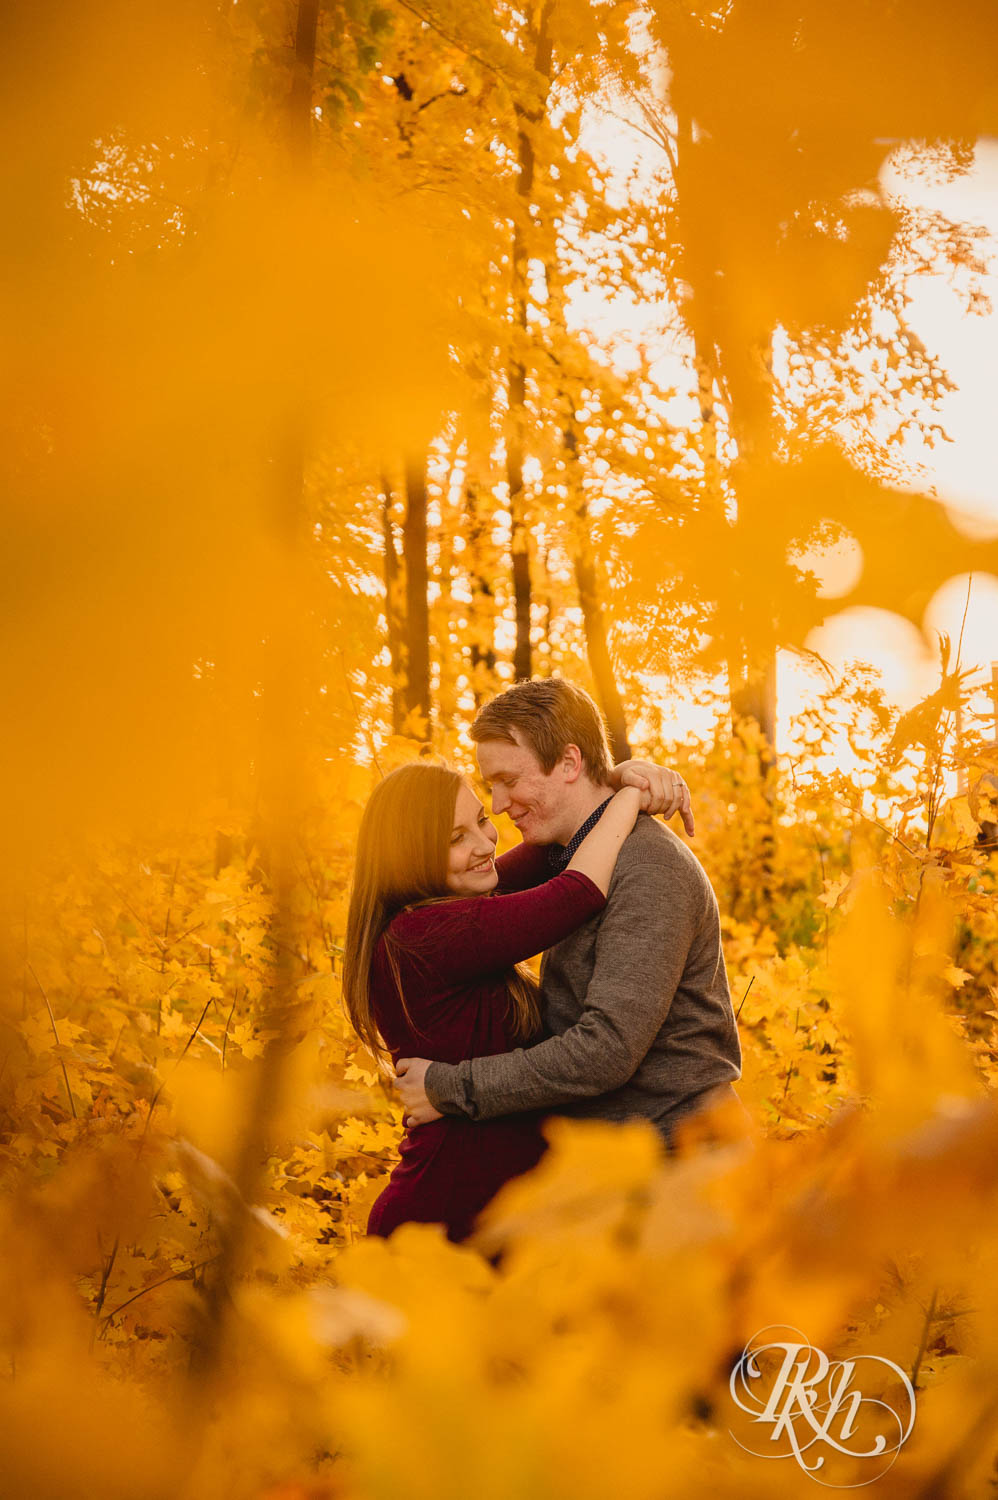 Jamie & Kyle - Minnesota Engagement Photography - RKH Images  (2 of 7).jpg